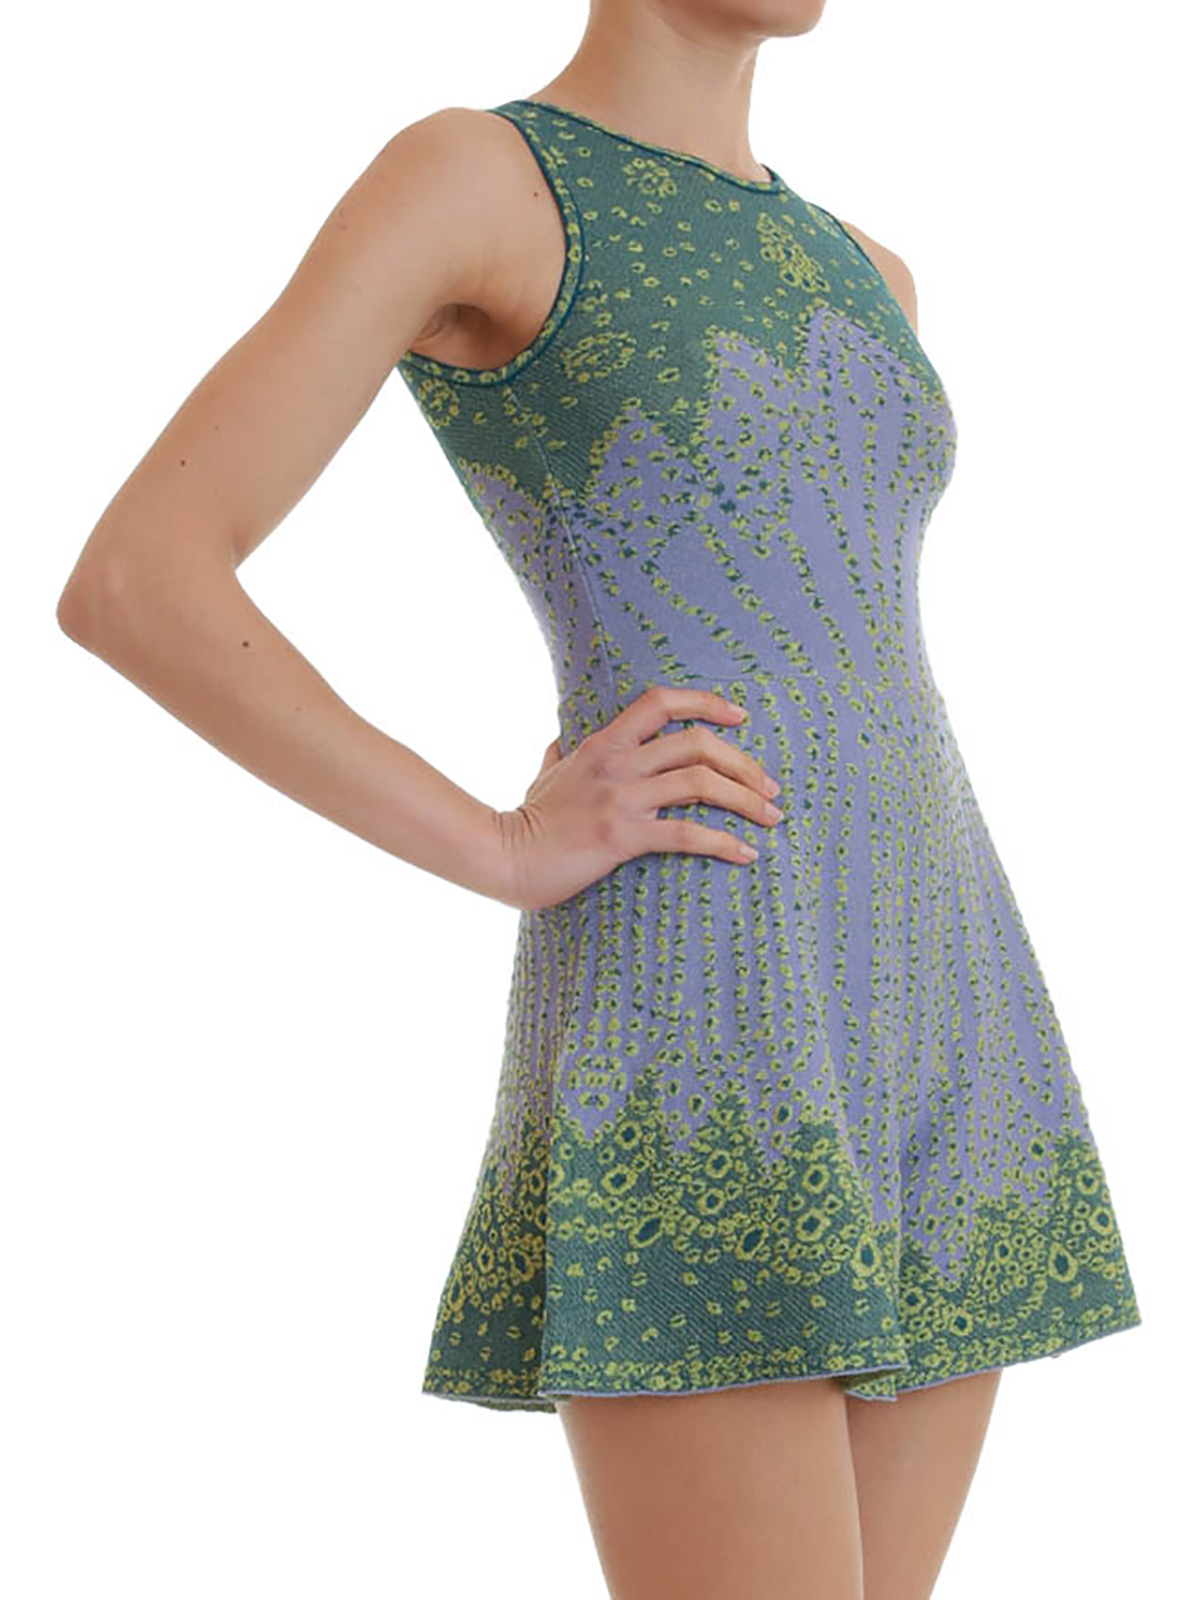 M Missoni knit playsuit Clearance Pictures Low Shipping Cheap Online hRZUsa1j